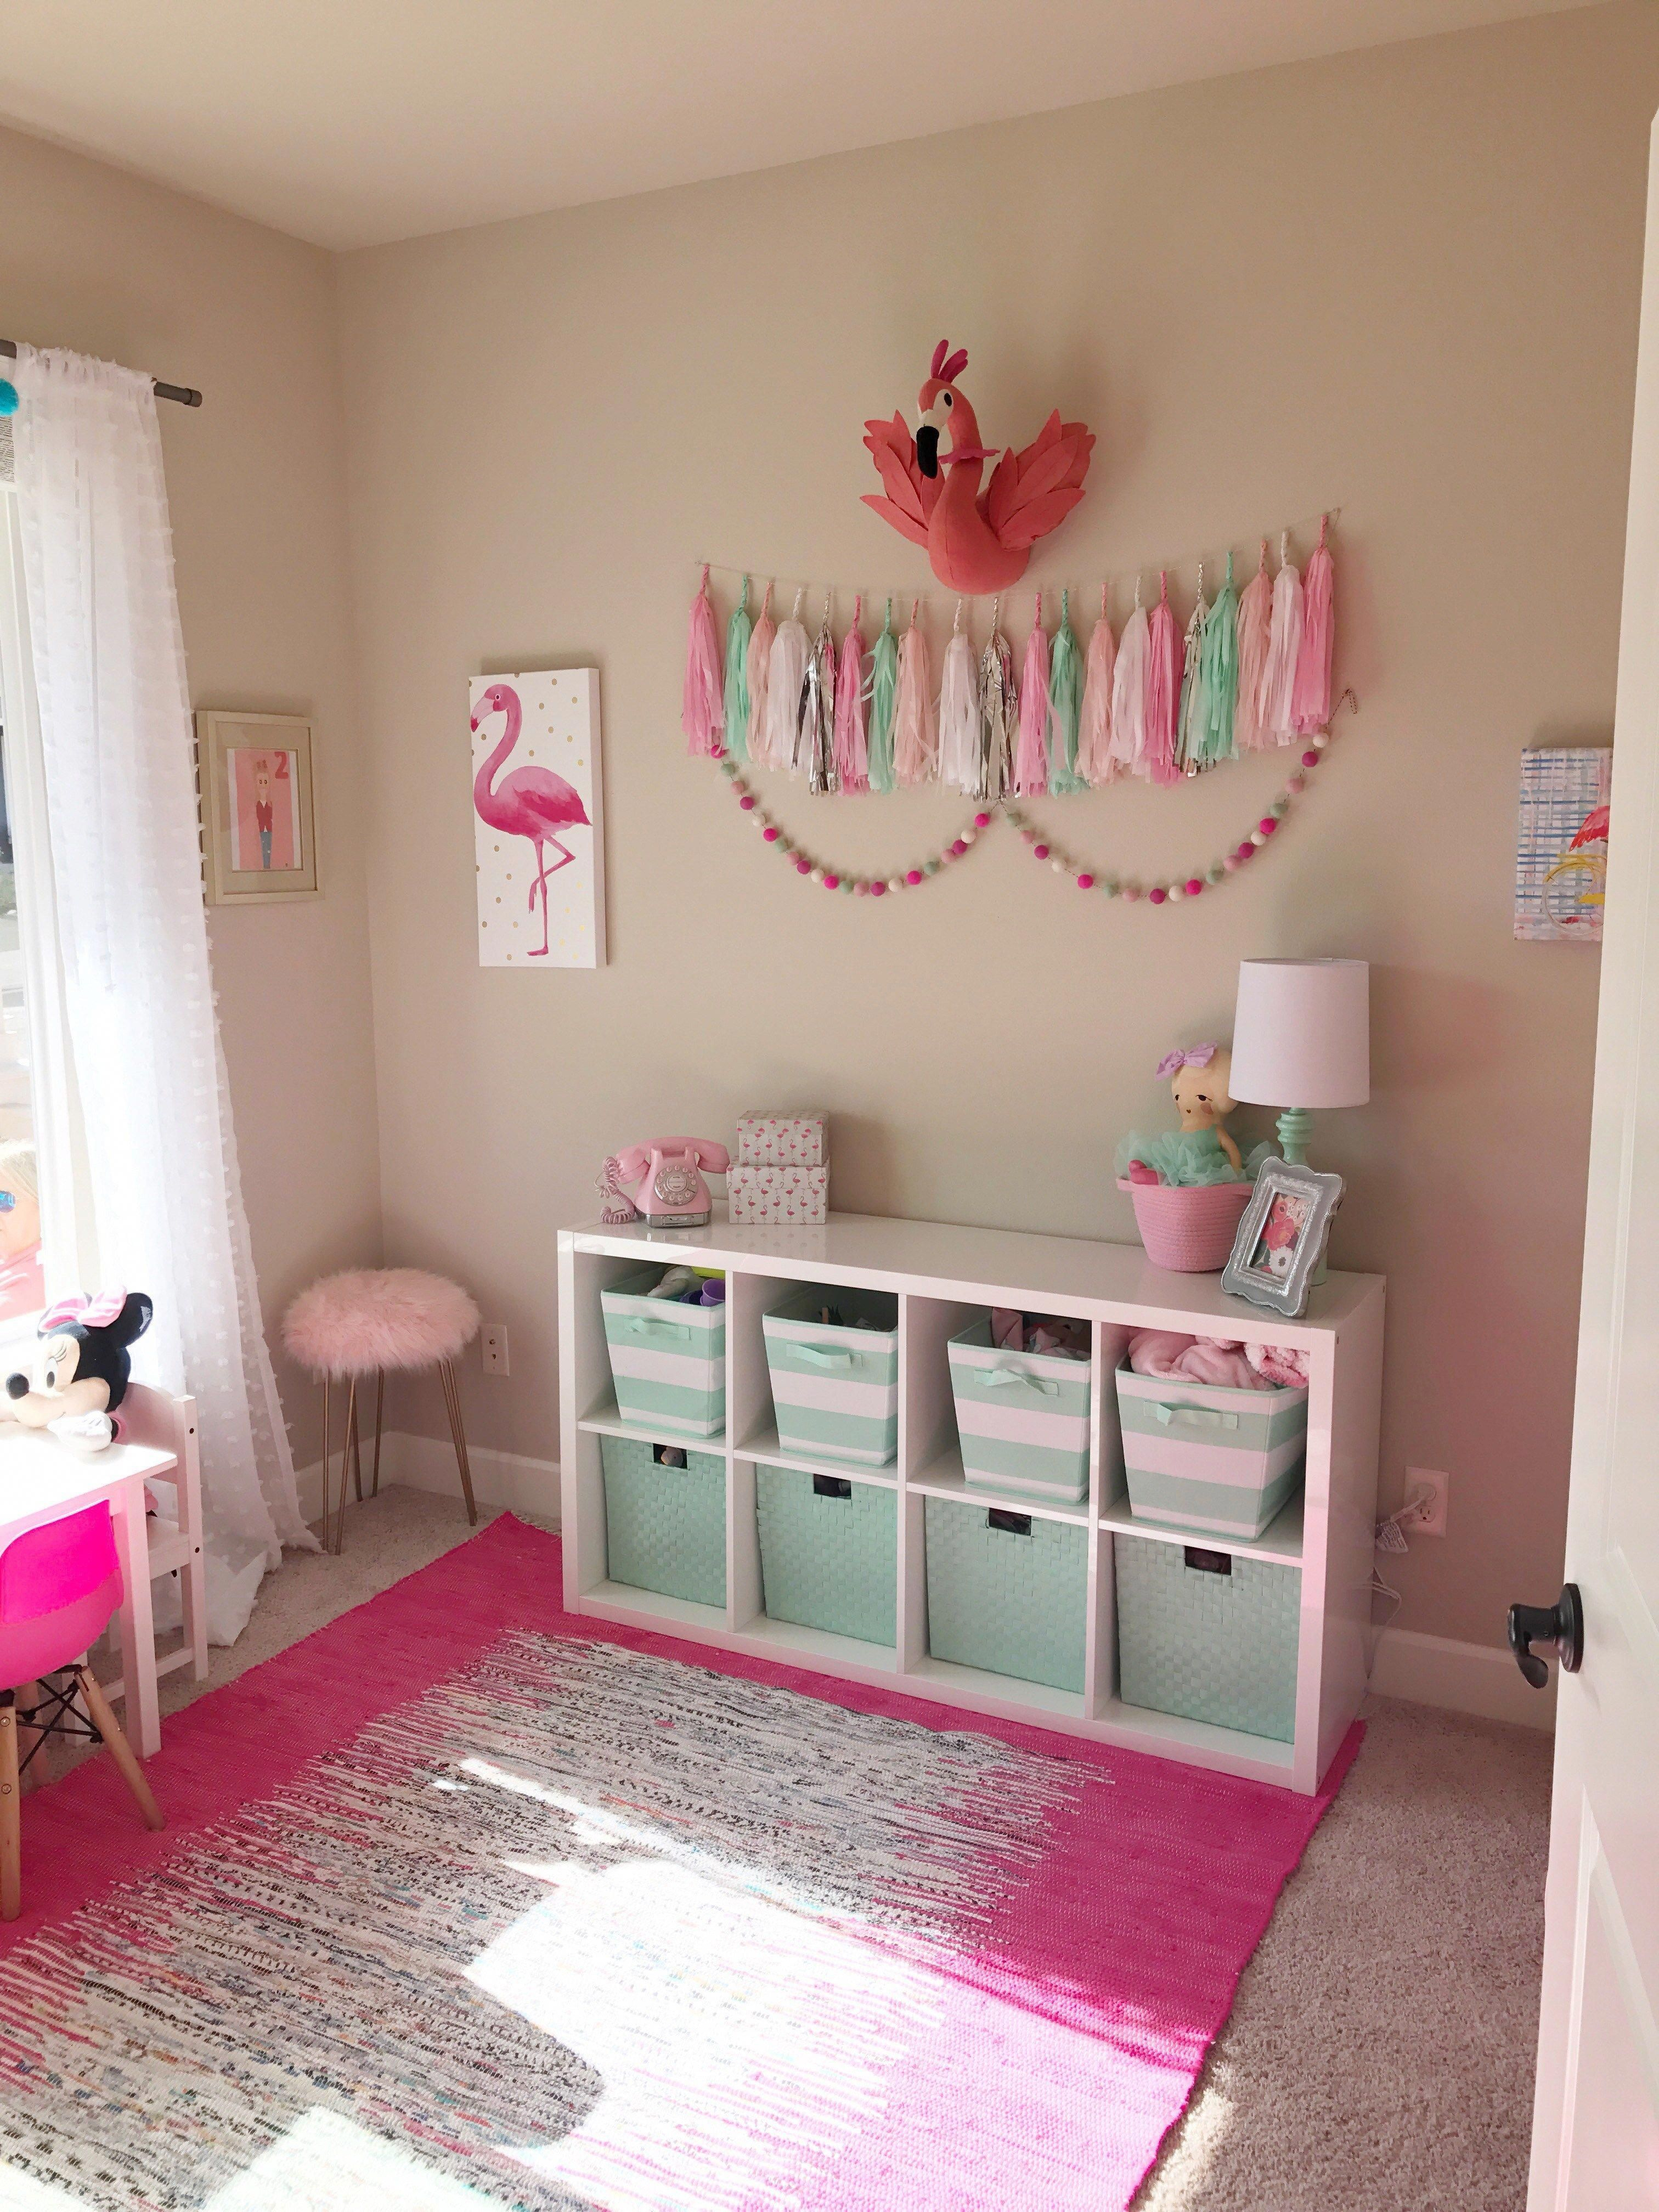 Girly Playroom Toddler Play Room Decoracioncuartoadolecentes Toddler Girl Room Toddler Playroom Toddler Rooms